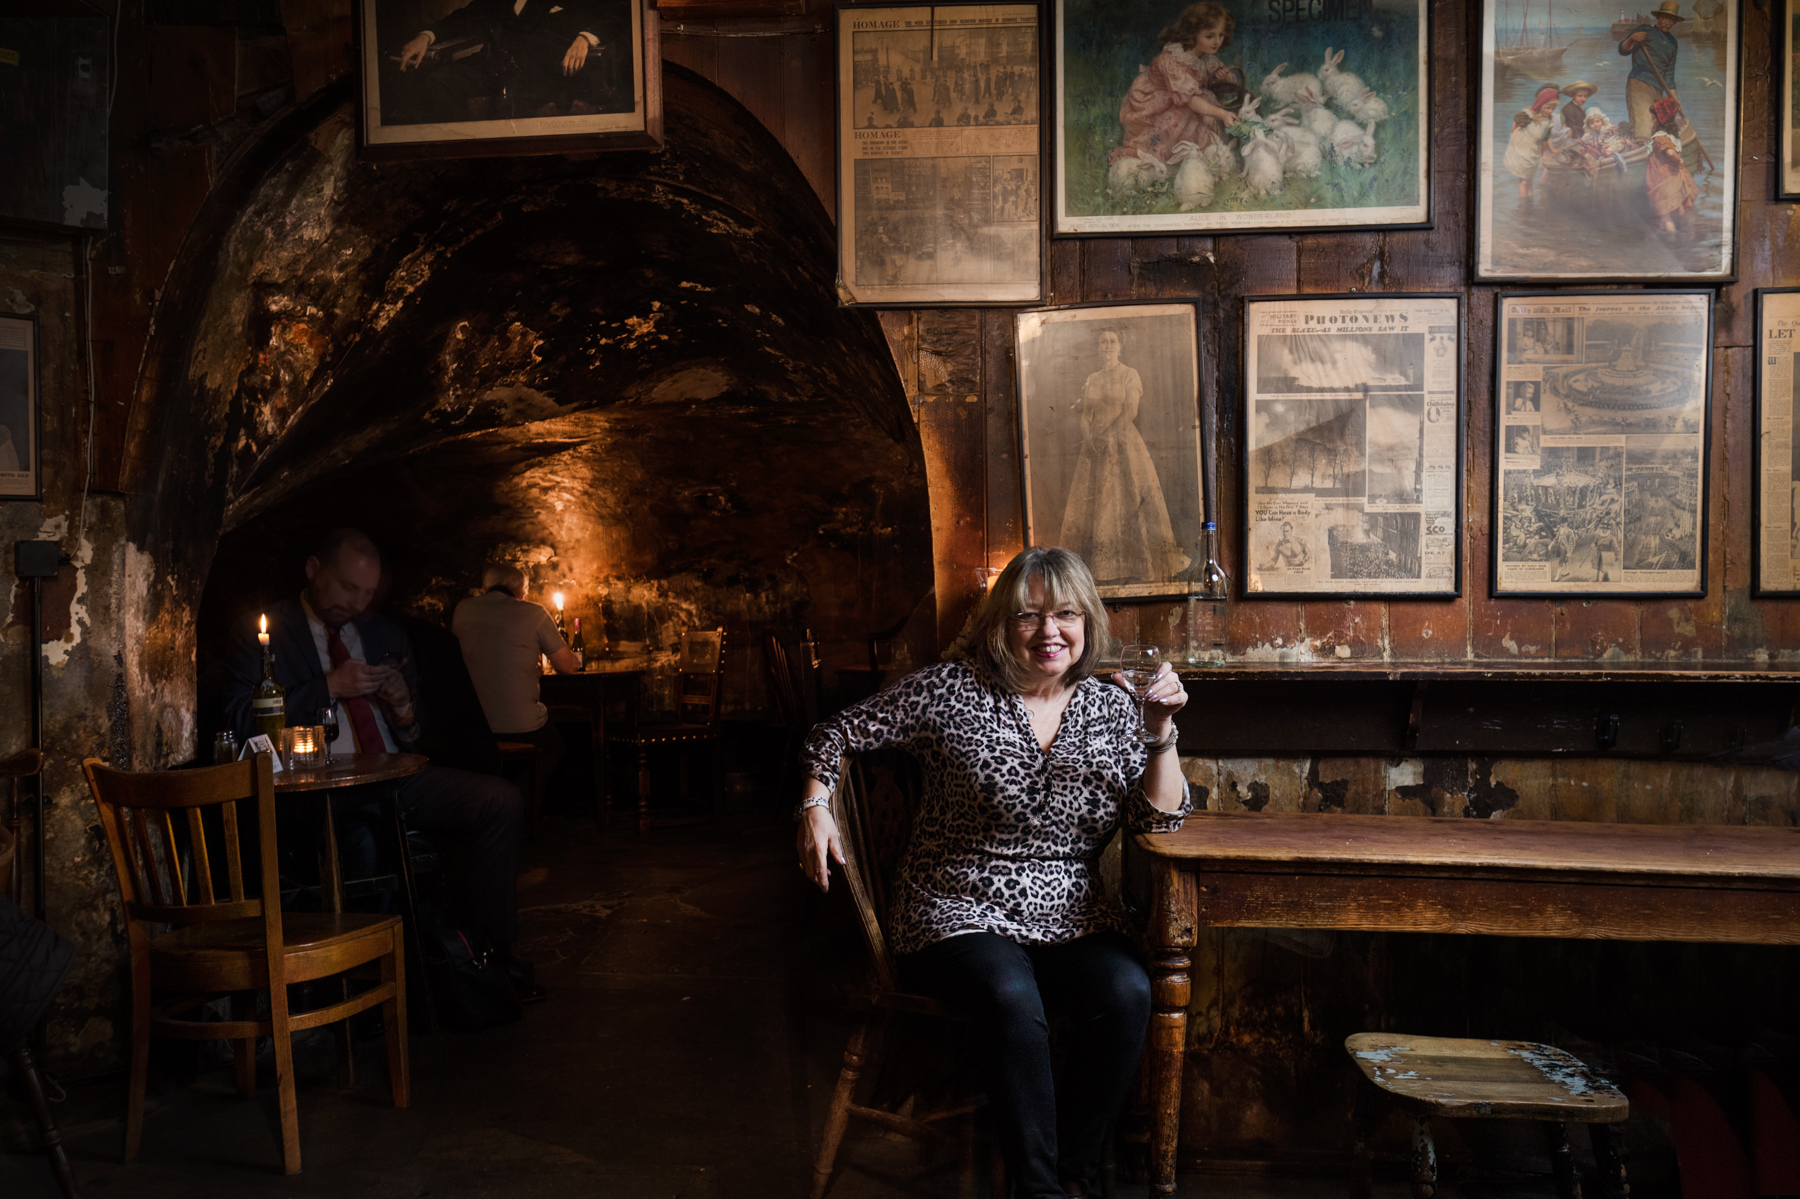 Irma from Gordon's Wine Bar, the oldest wine bar in London. Irma has 22 years' experience.